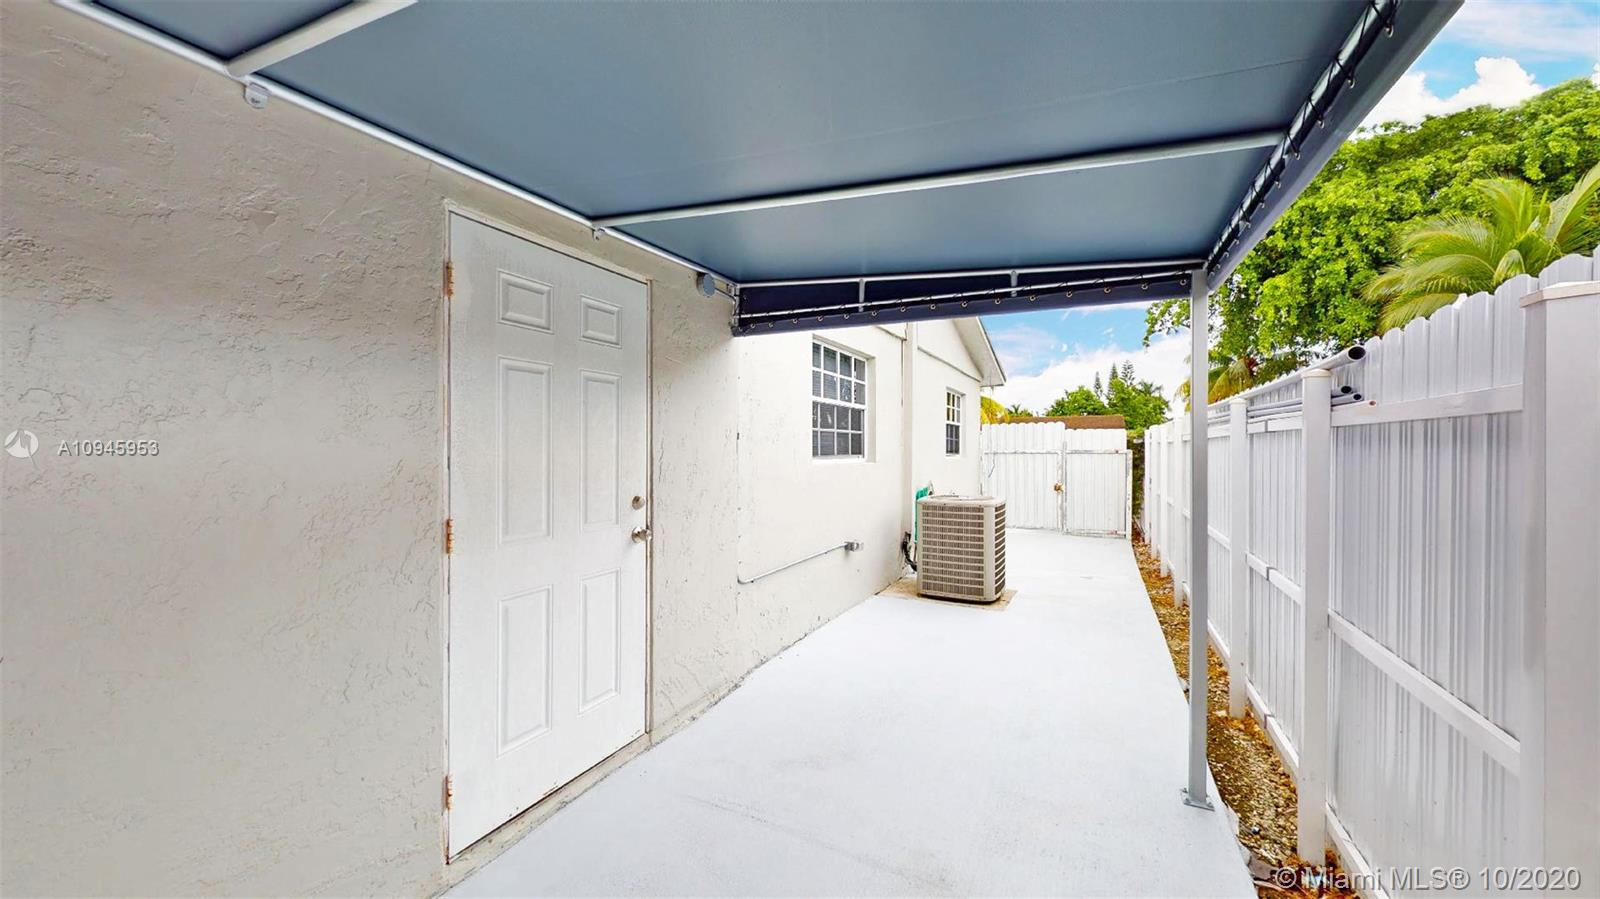 Cozy 1 Bedroom 1 Bathroom  in great location near shopping centers, restaurants, and major highways. The interior offers ceramic tile floors throughout, new kitchen with new appliances, updated bathroom, washer & dryer, updated bathroom, large bedroom, custom closet, and new AC unit. The exterior offers a private & covered entrance with personal driveway. MOVE IN READY! WILL NOT LAST!  Rent includes Power, Water, & Lawn cut.